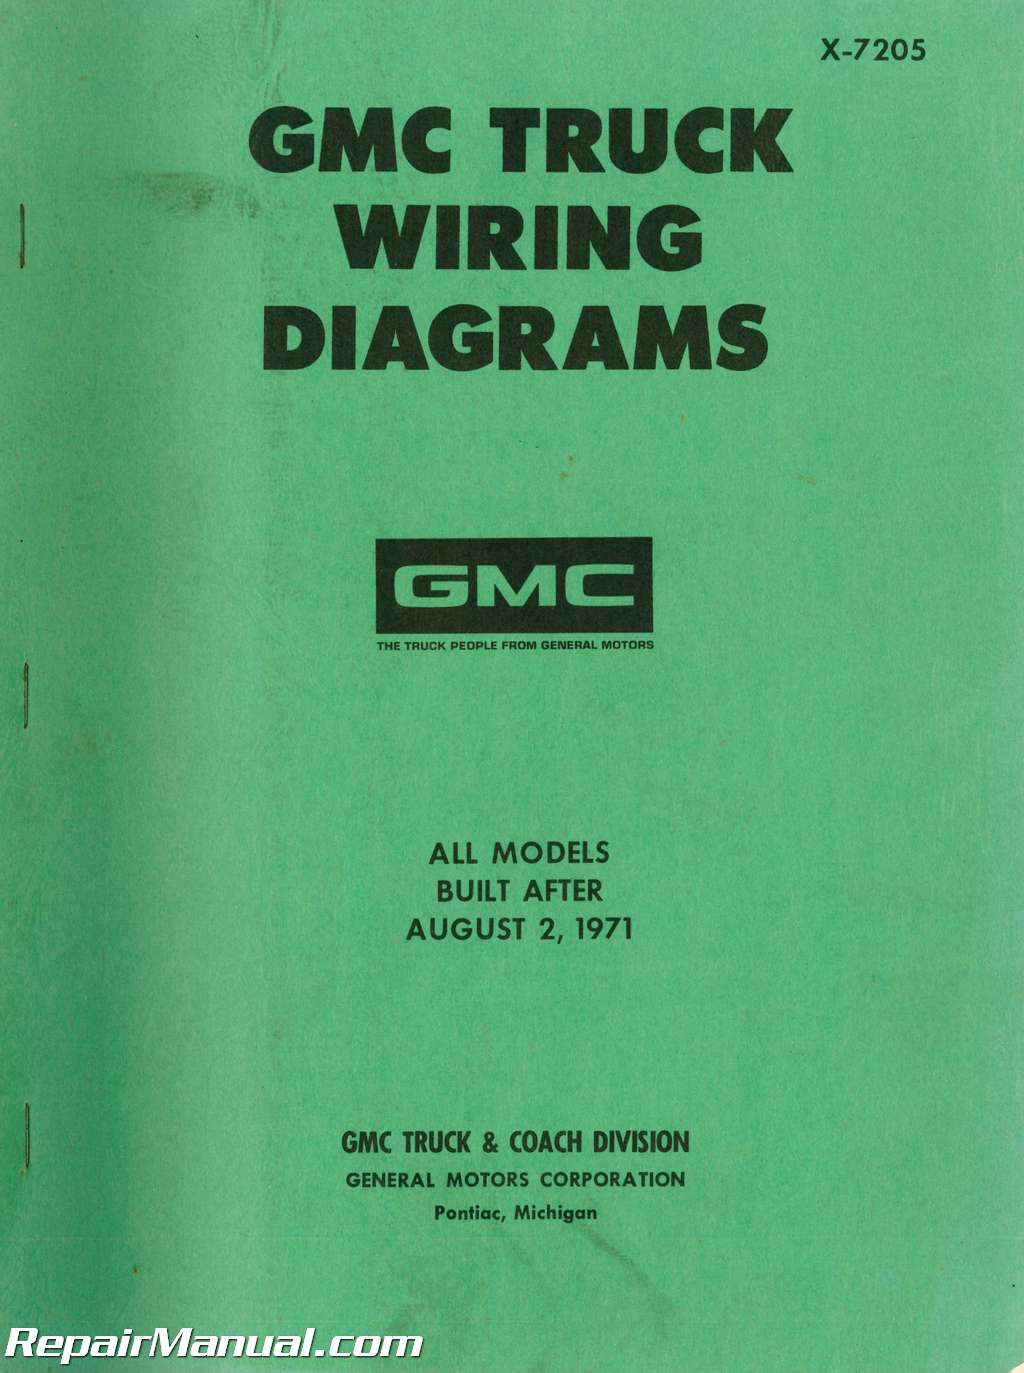 1972 Gmc Truck Wiring Diagram Detailed Schematics Chevy C10 Starting Used Diagrams Starter Wd 001